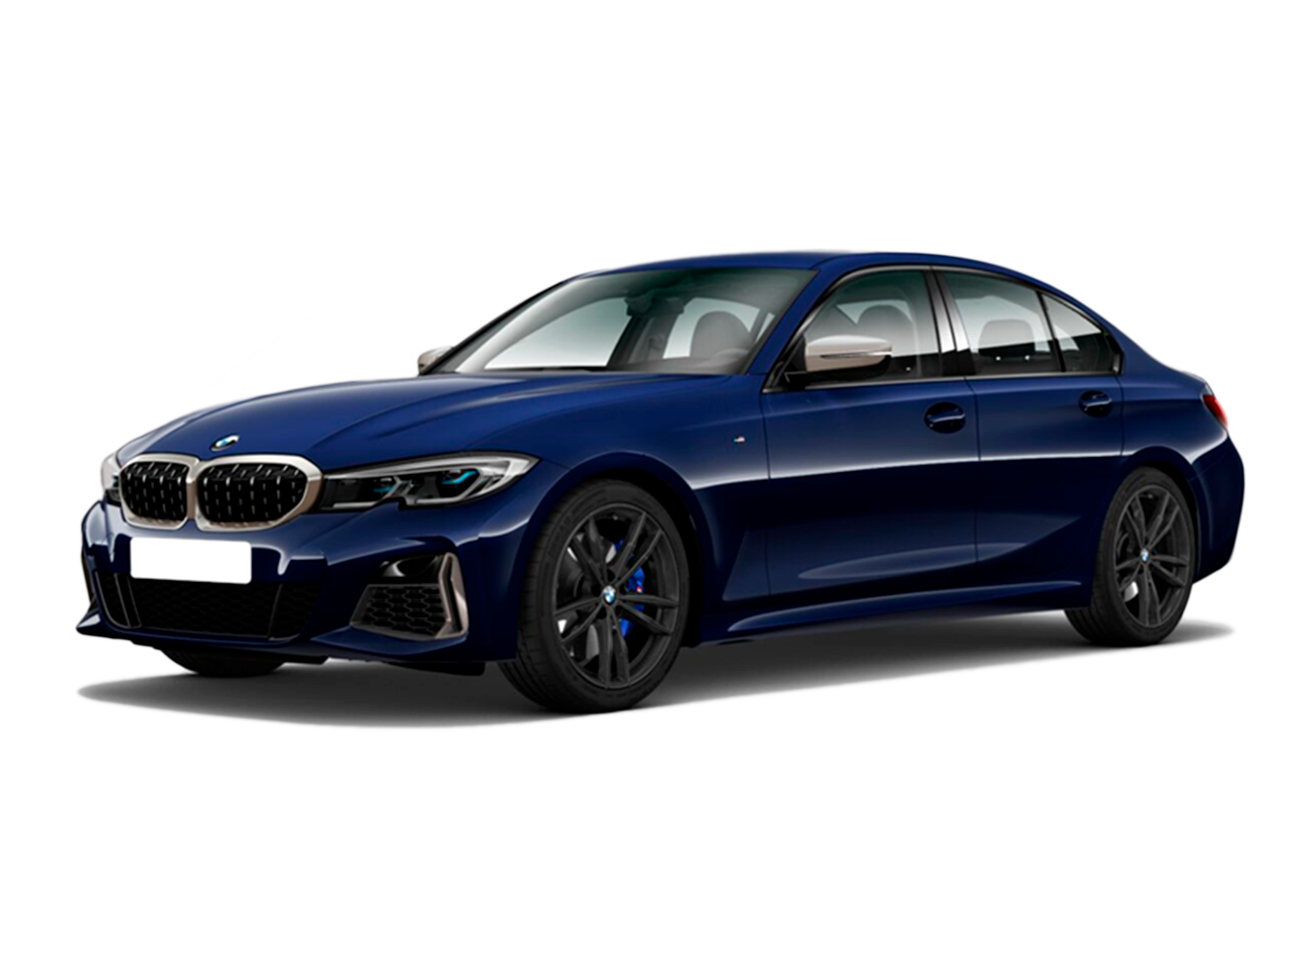 3.0 TWINPOWER GASOLINA FIRST EDITION XDRIVE STEPTRONIC